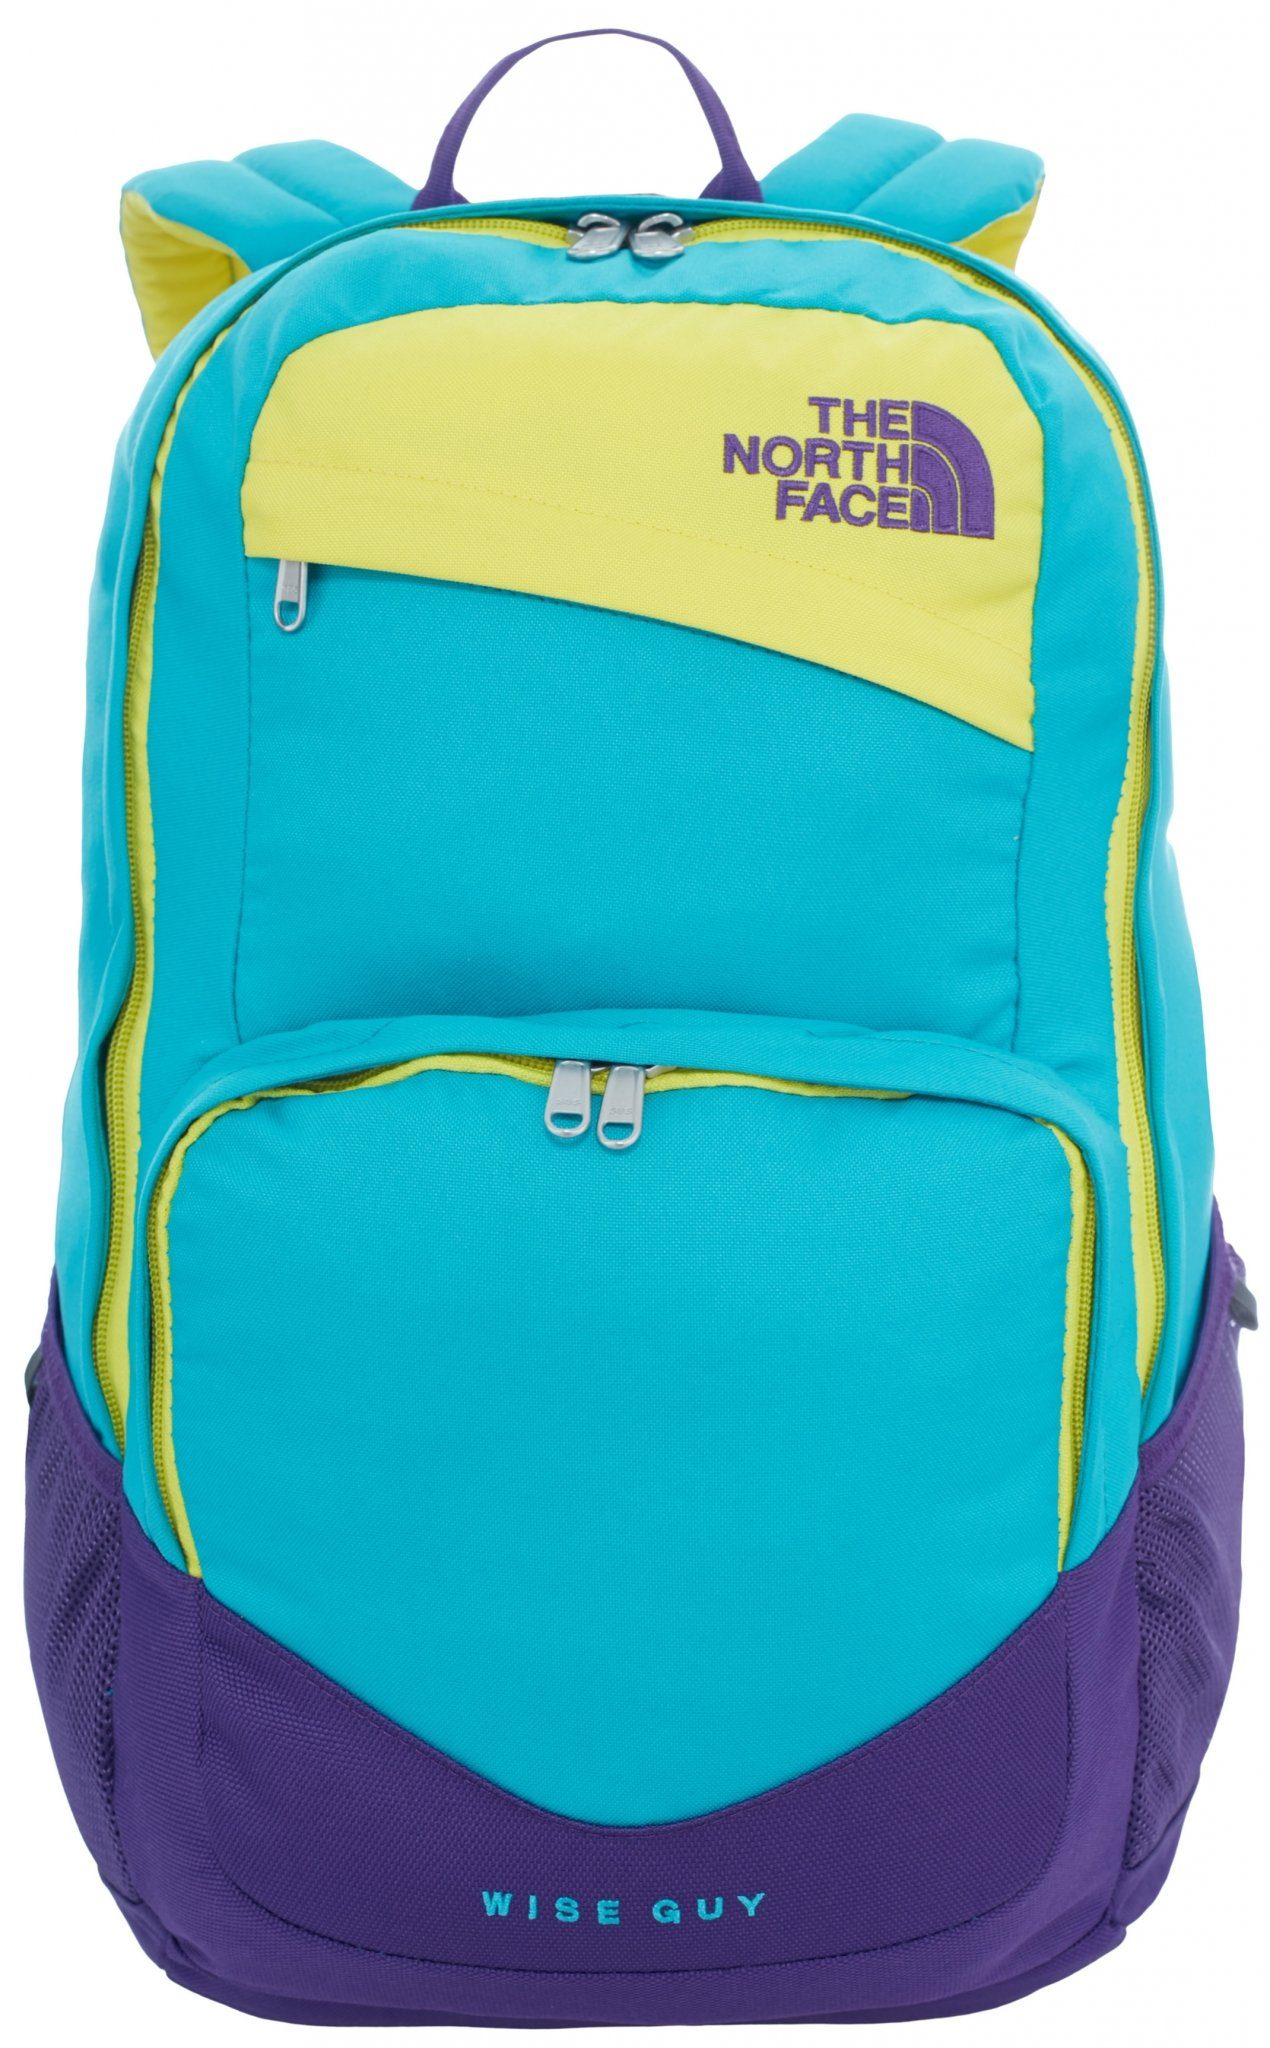 The North Face Sport- und Freizeittasche »Wise Guy Backpack«